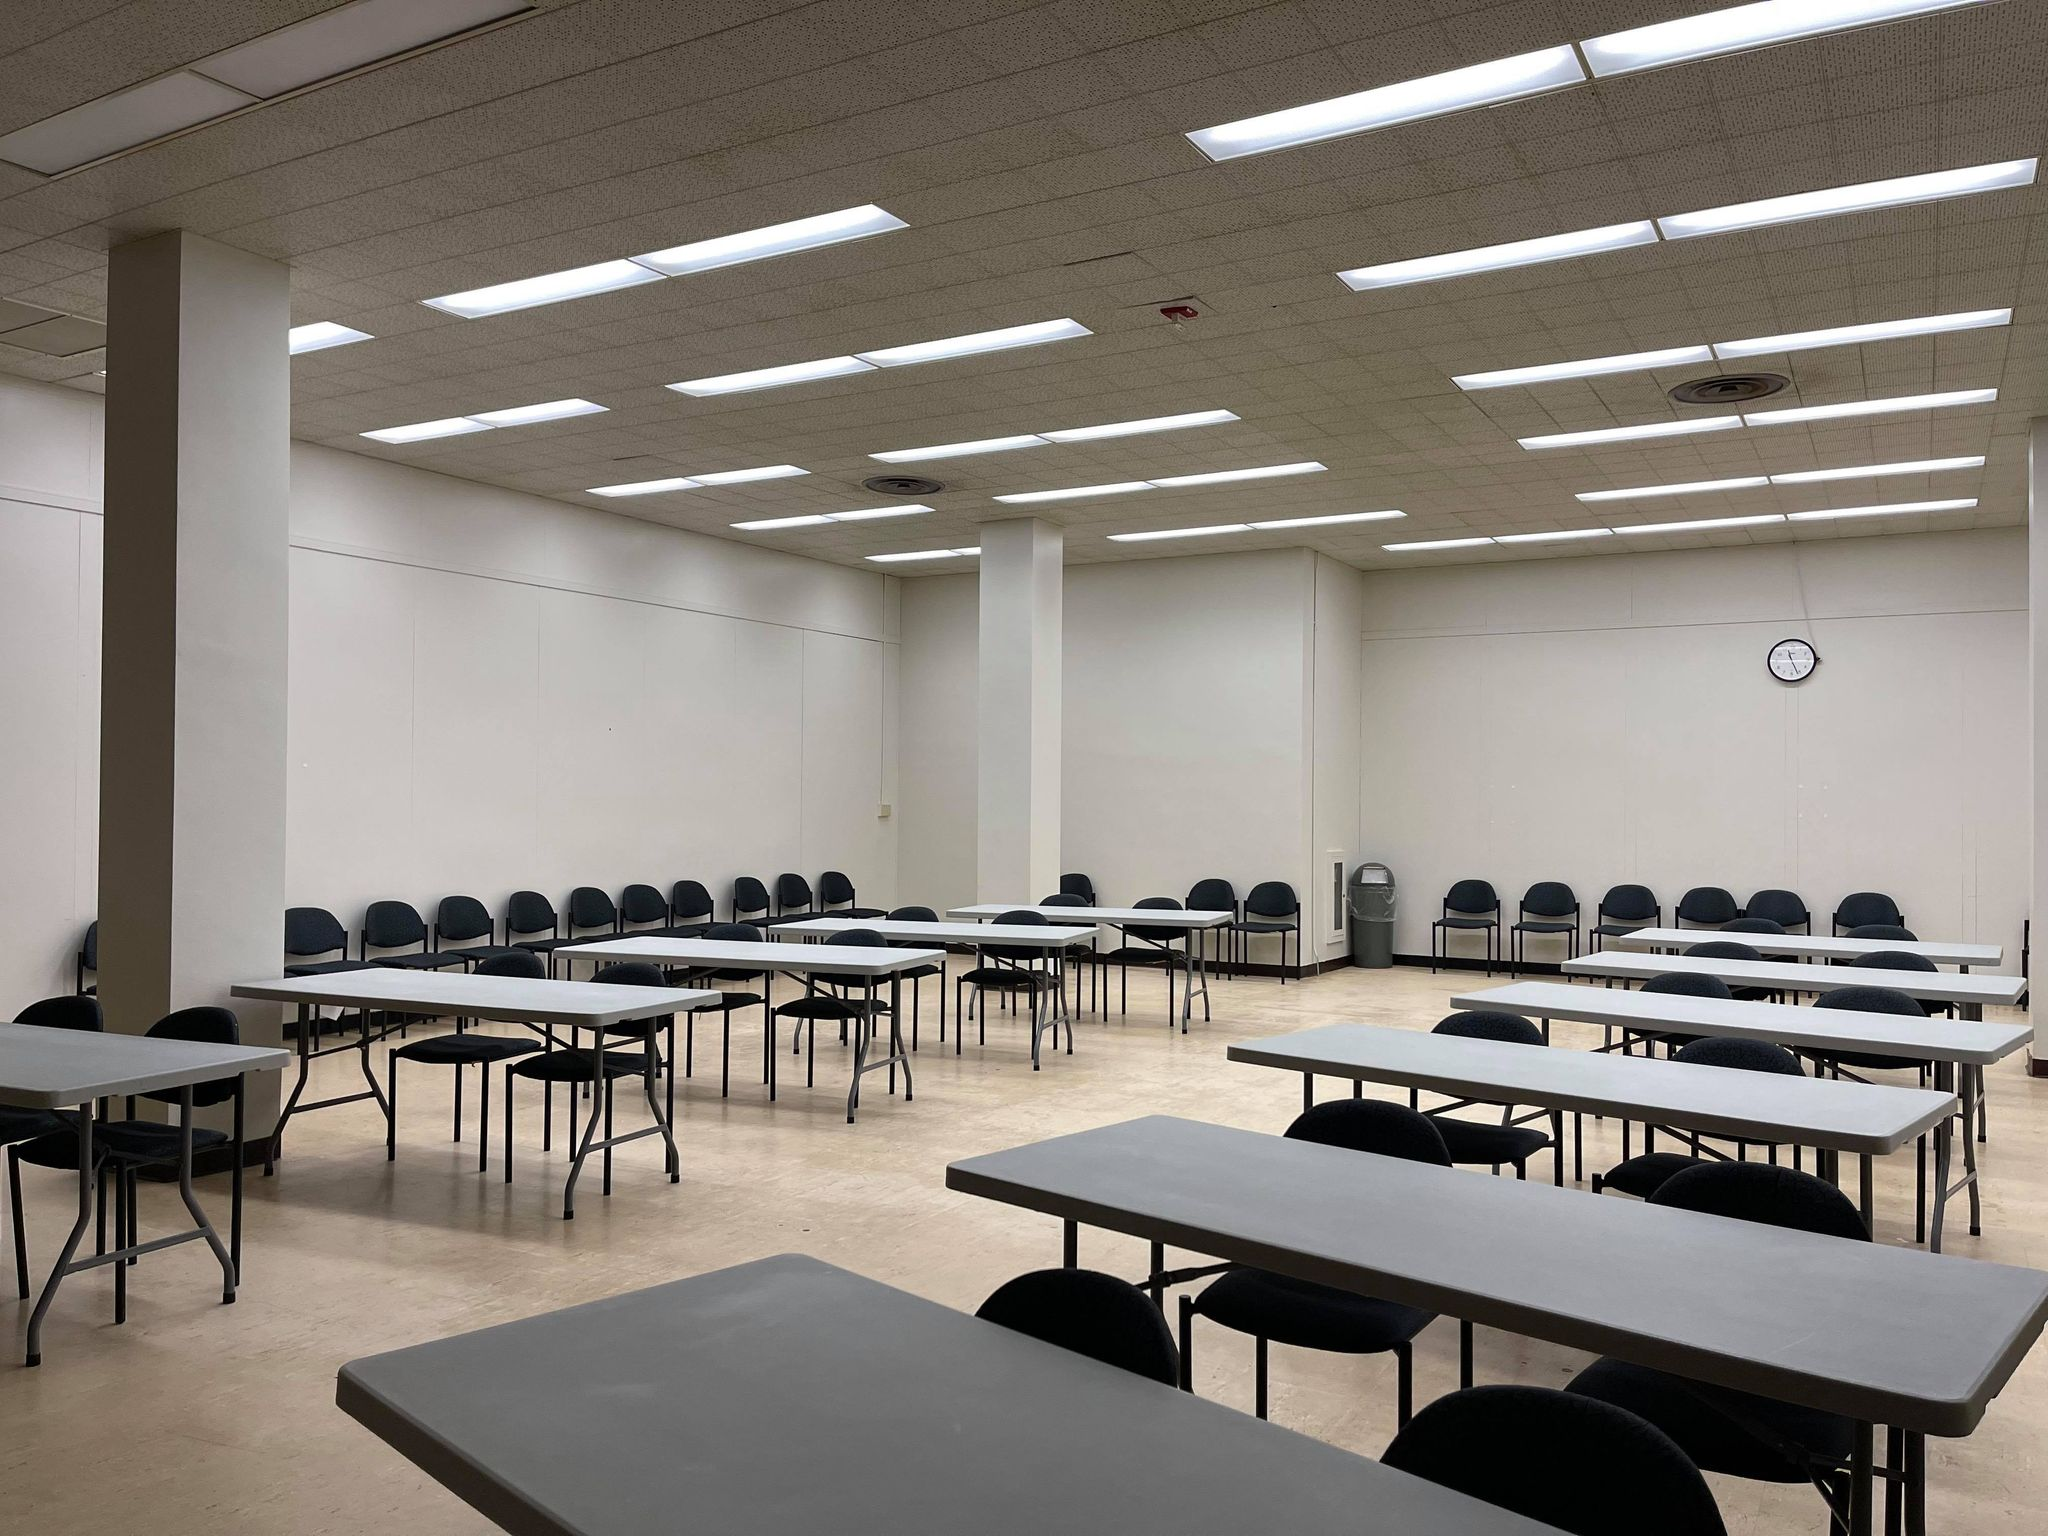 Downtown Central Library – Central Meeting Room